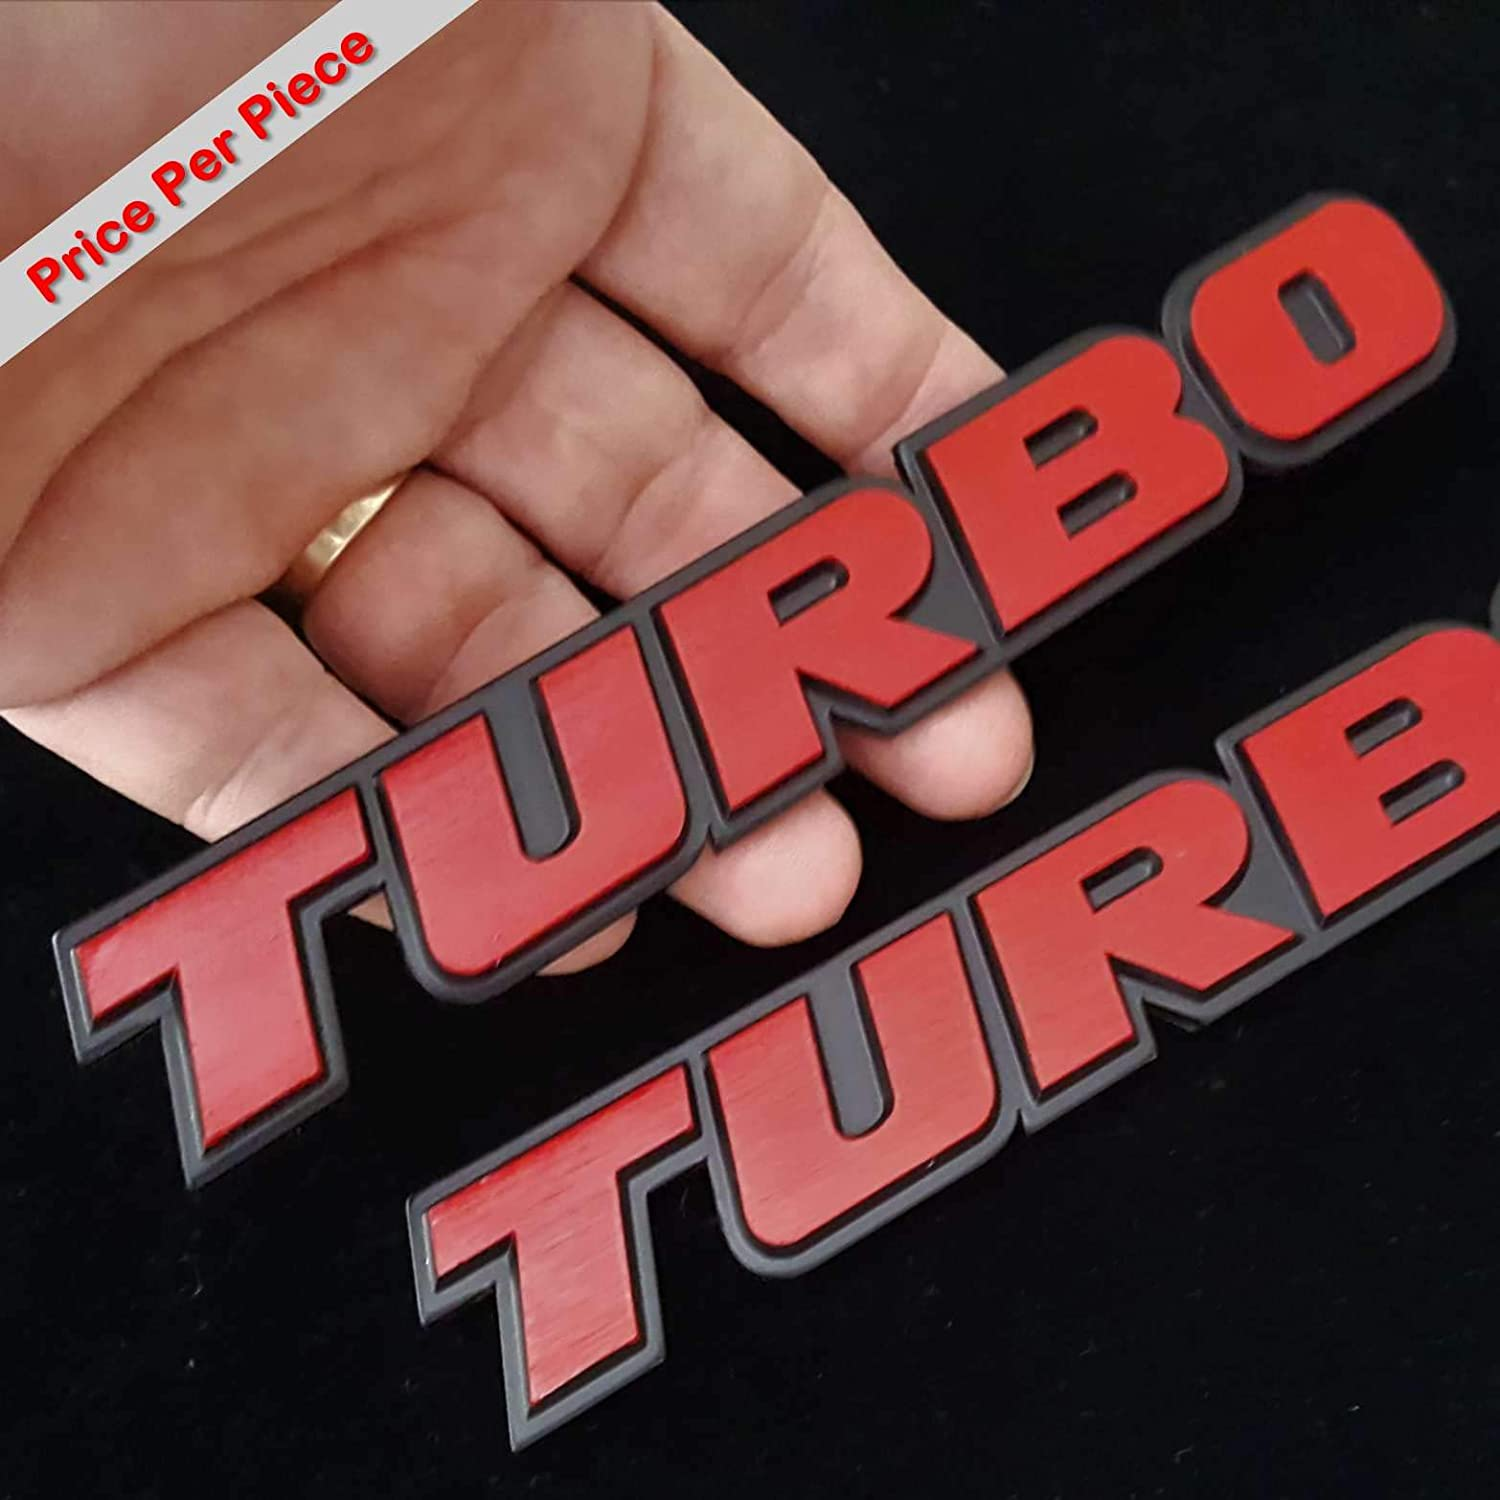 Turbo Red Hq Aluminium Metal Car 3D Badge Emblem Brushed Alloy Logo Auto Adhesive Fender Swap Trunk Hood Side Replacement Decal Sticker Truck Van Sports Diy Name Plate SAISDON 1 Piece 5282